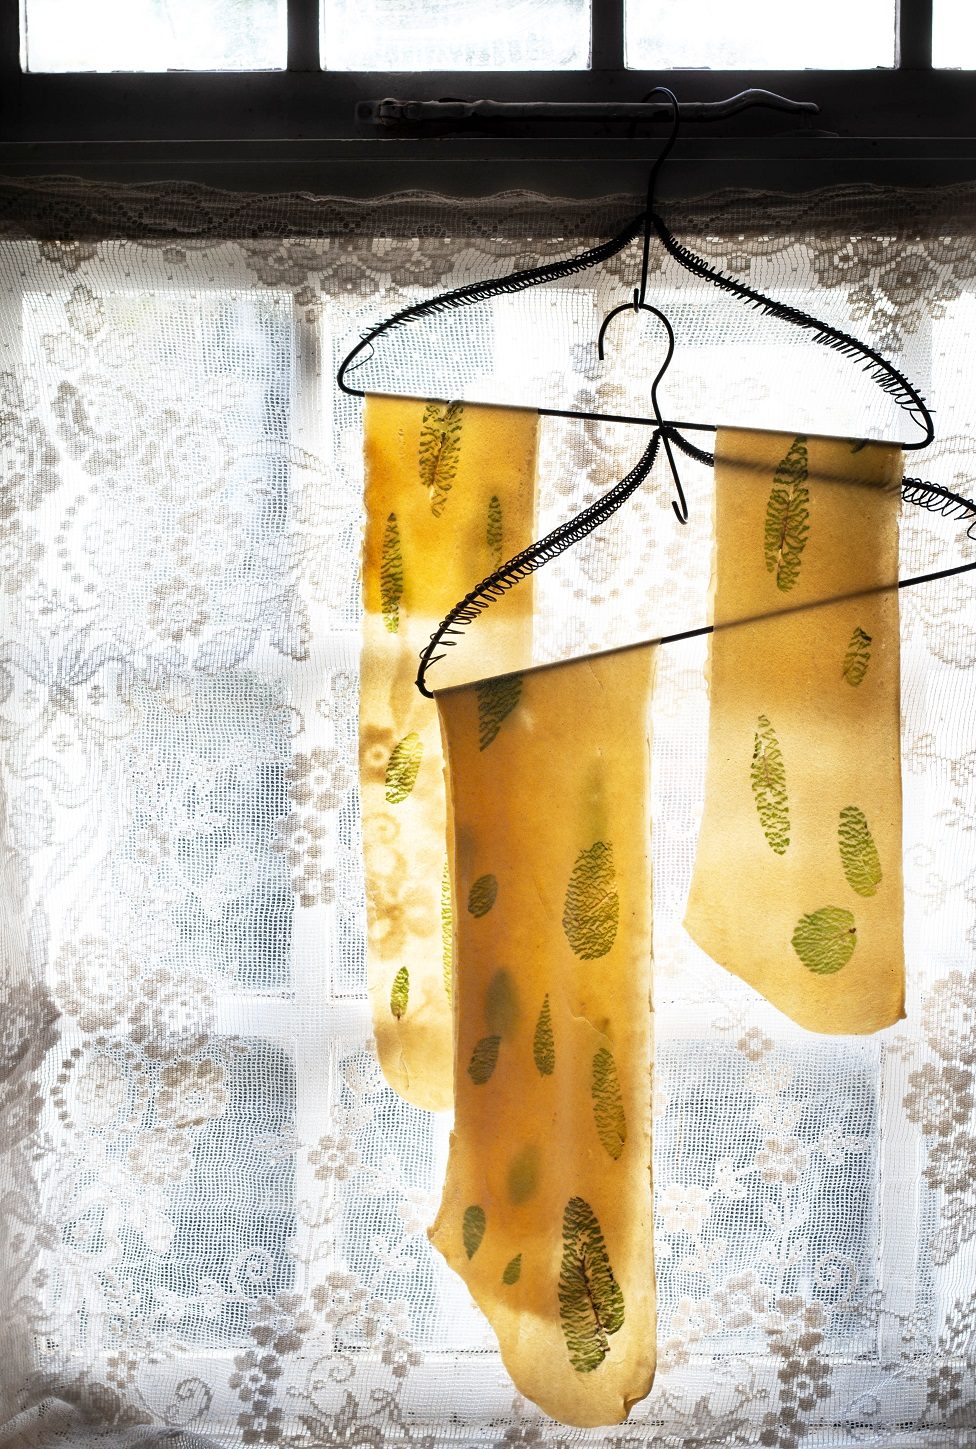 Sheets of pasta hanging to dry next to a window